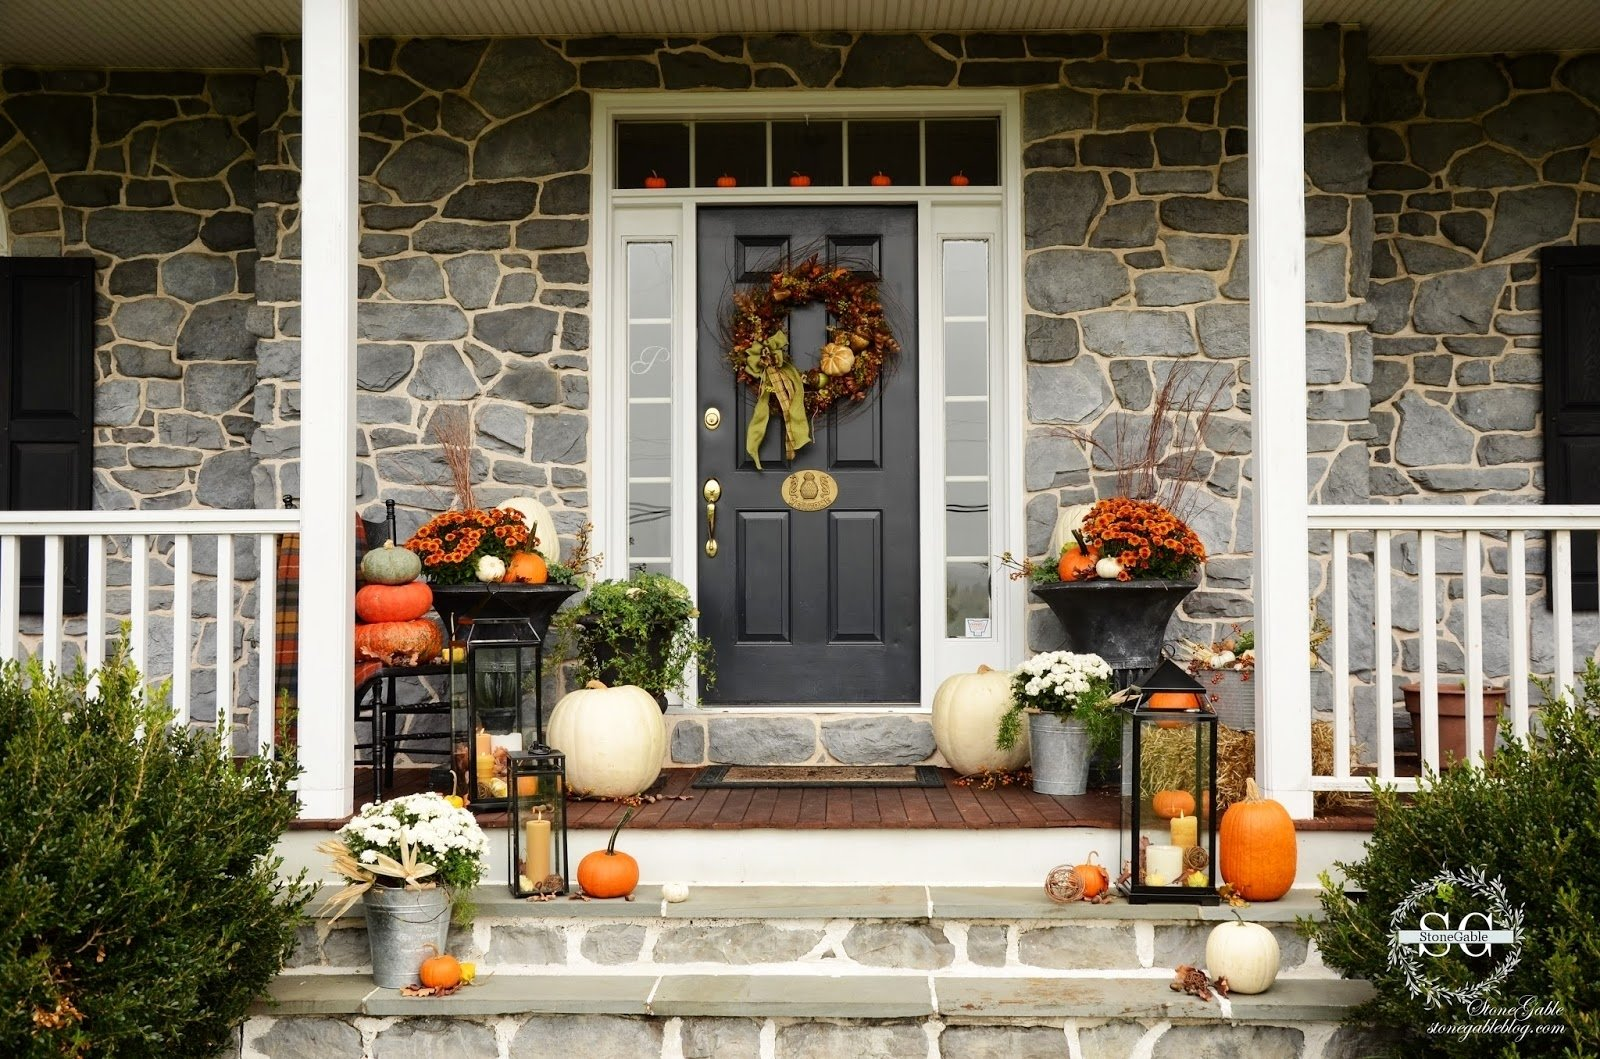 10 Lovely Front Door Fall Decorating Ideas fall on the front porch stonegable small front porch fall decorating